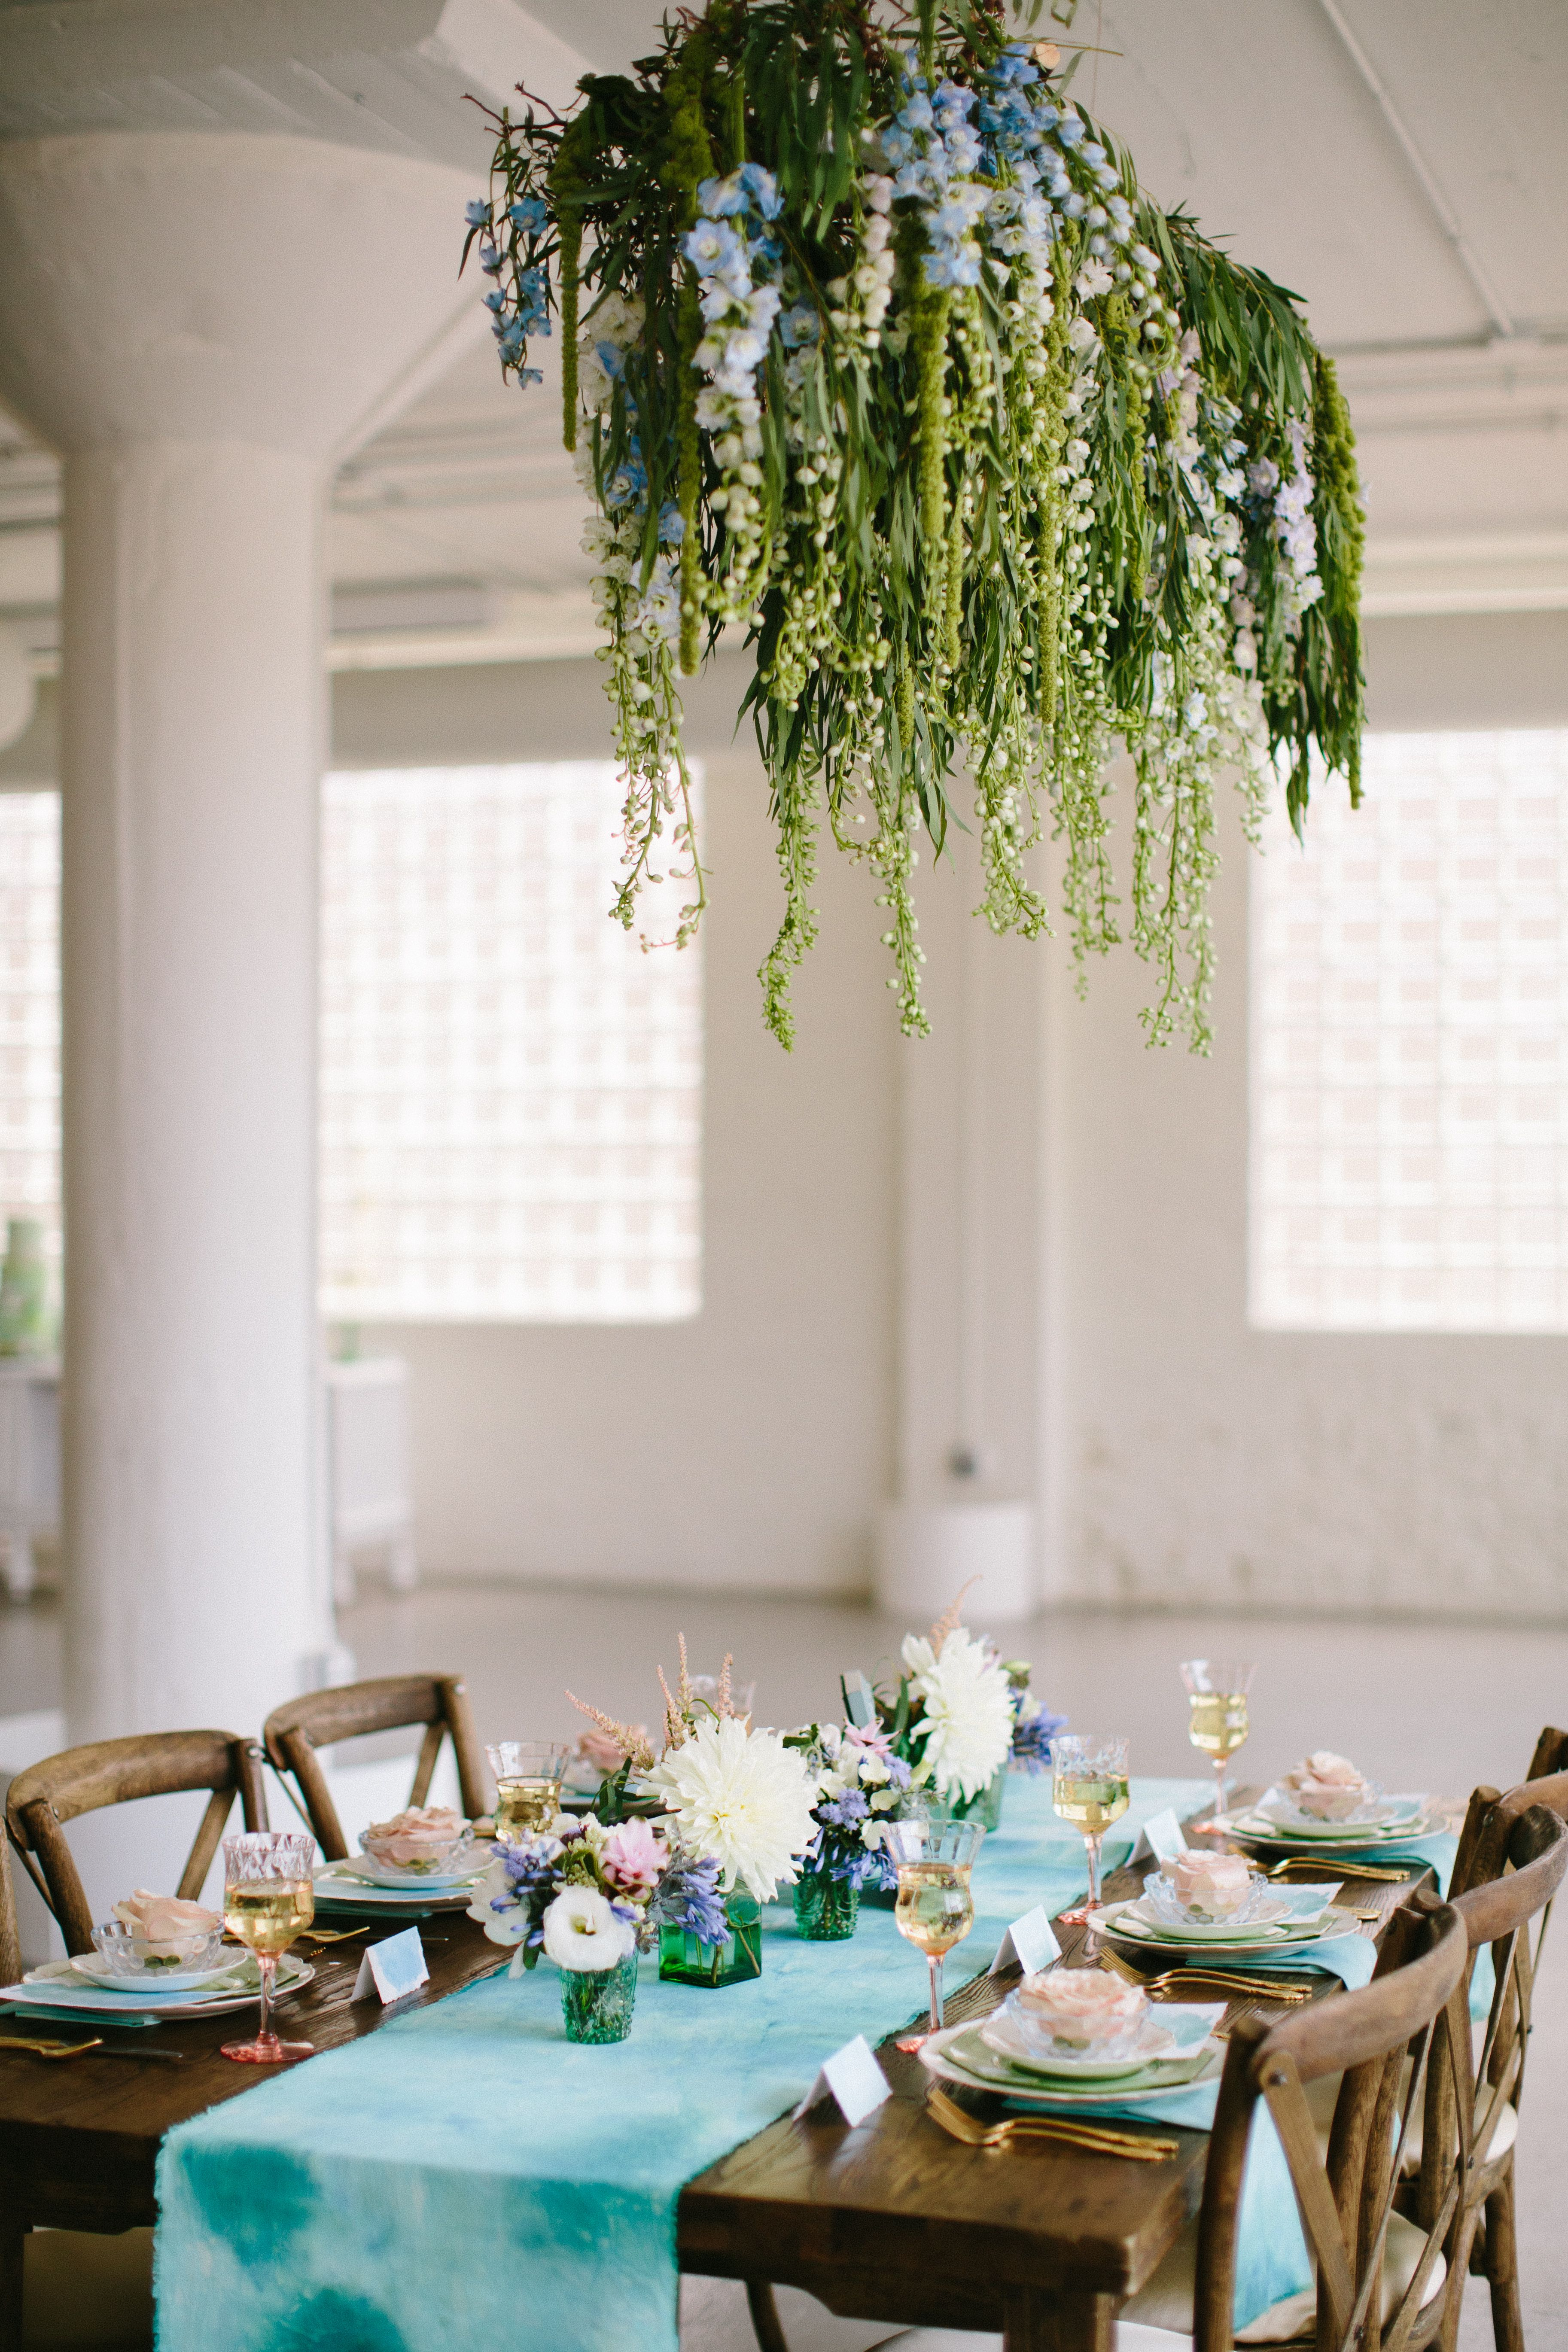 Suspended florals for weddings suspended floral arrangements - Suspended Floral Arrangement Photo By Katie Kett Photography